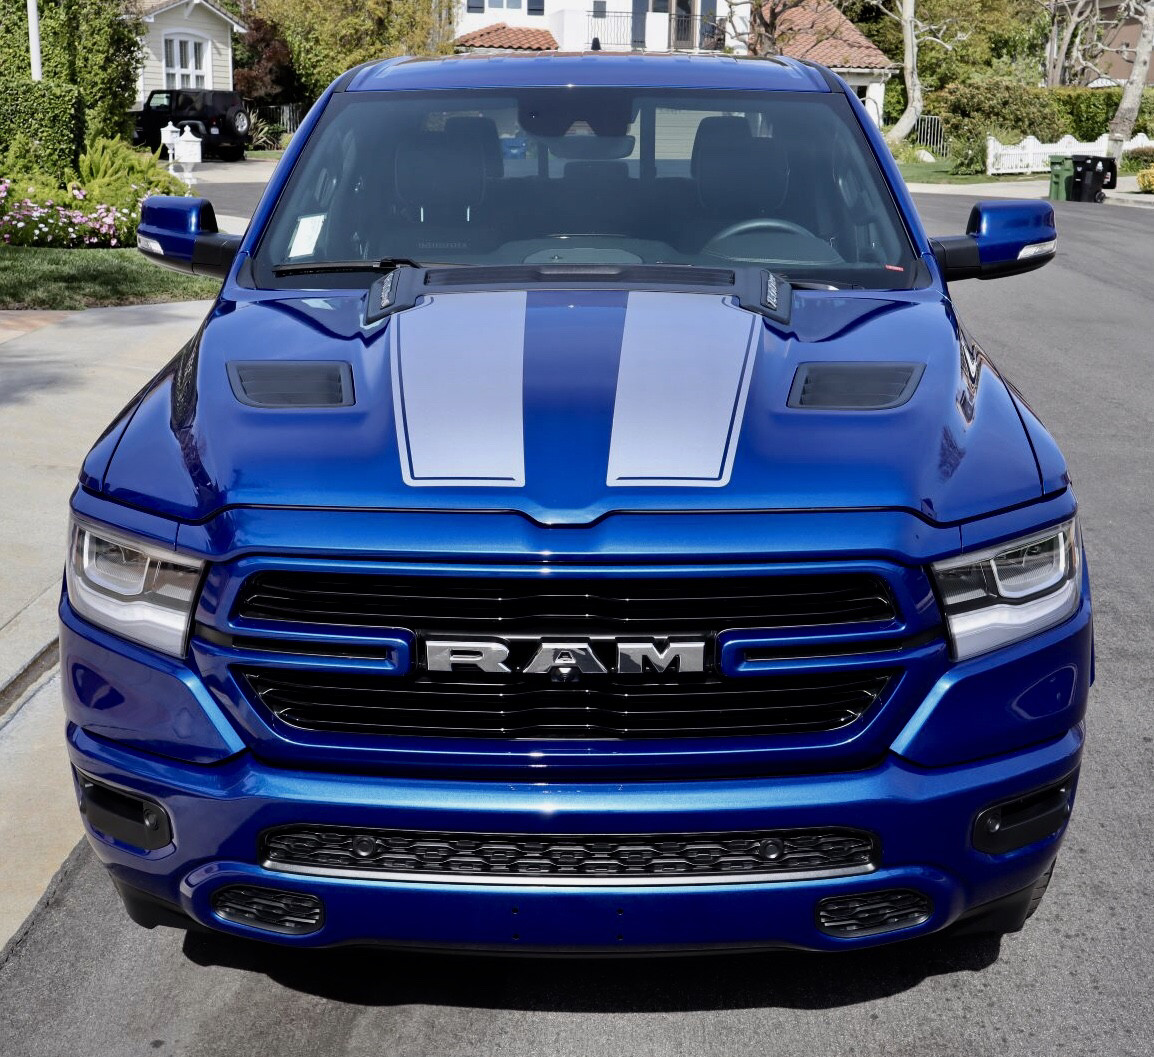 2019 Ram 1500: Up Ram 1500 Rebel / Sport Hood Hockey Decals